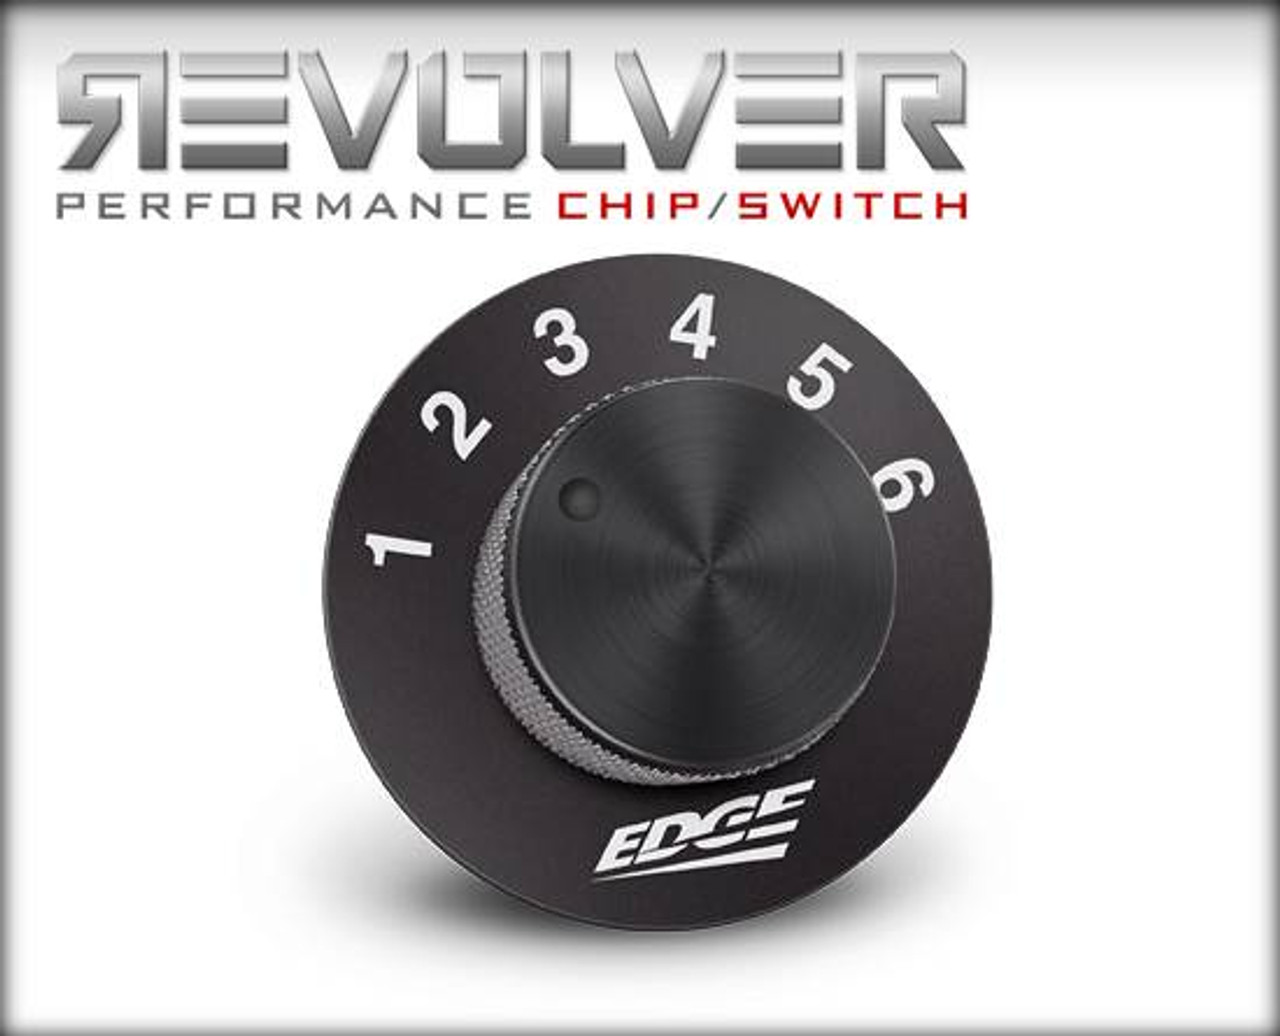 EDGE REVOLVER SWITCH 6 POSITION CHIP 99.5-01 FORD POWERSTROKE 7.3L AUTO